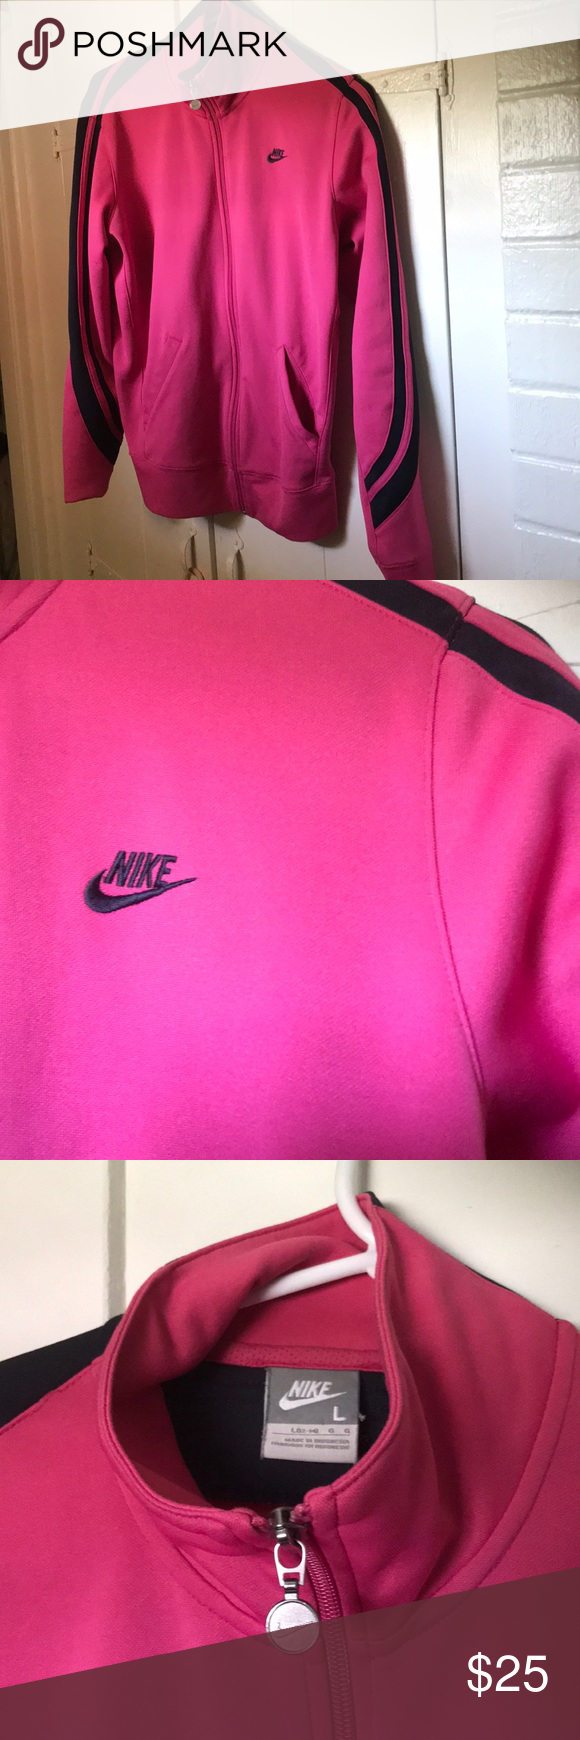 a28a3d285427 Spotted while shopping on Poshmark  Nike pink sports jacket!  poshmark   fashion  shopping  style  Nike  Sweaters